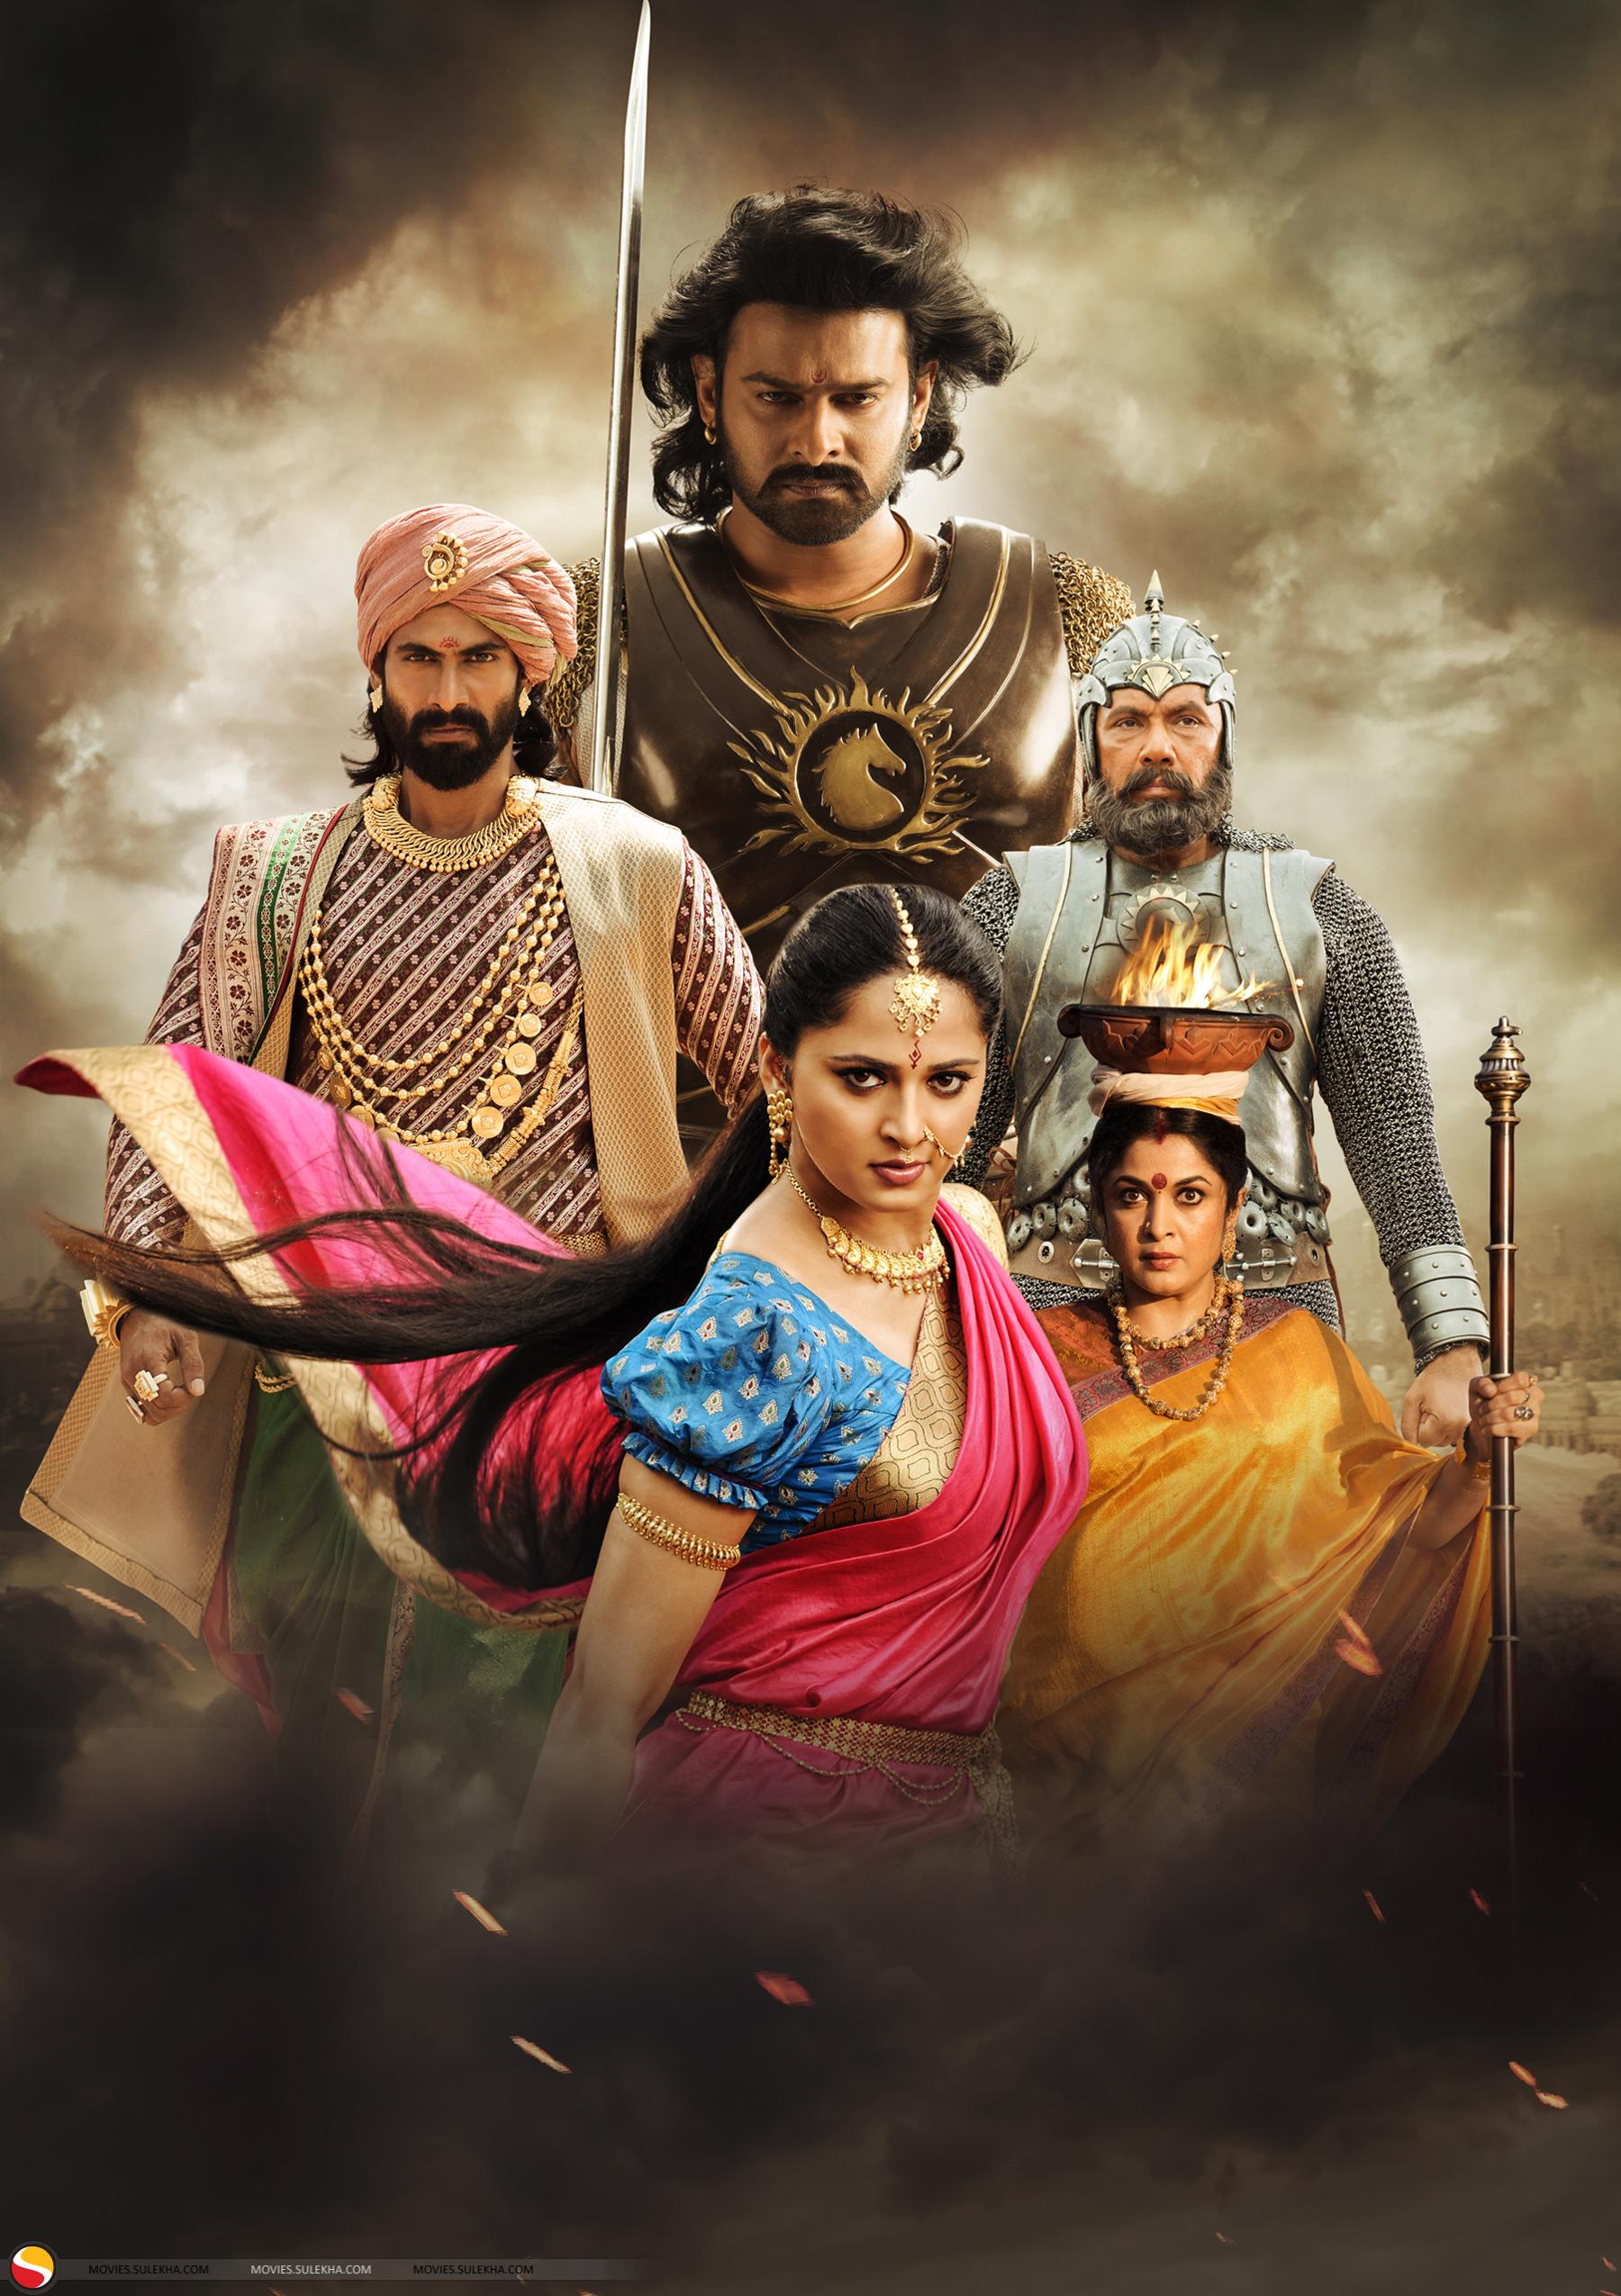 Wondering how Baahubali managed to change the face of Indian